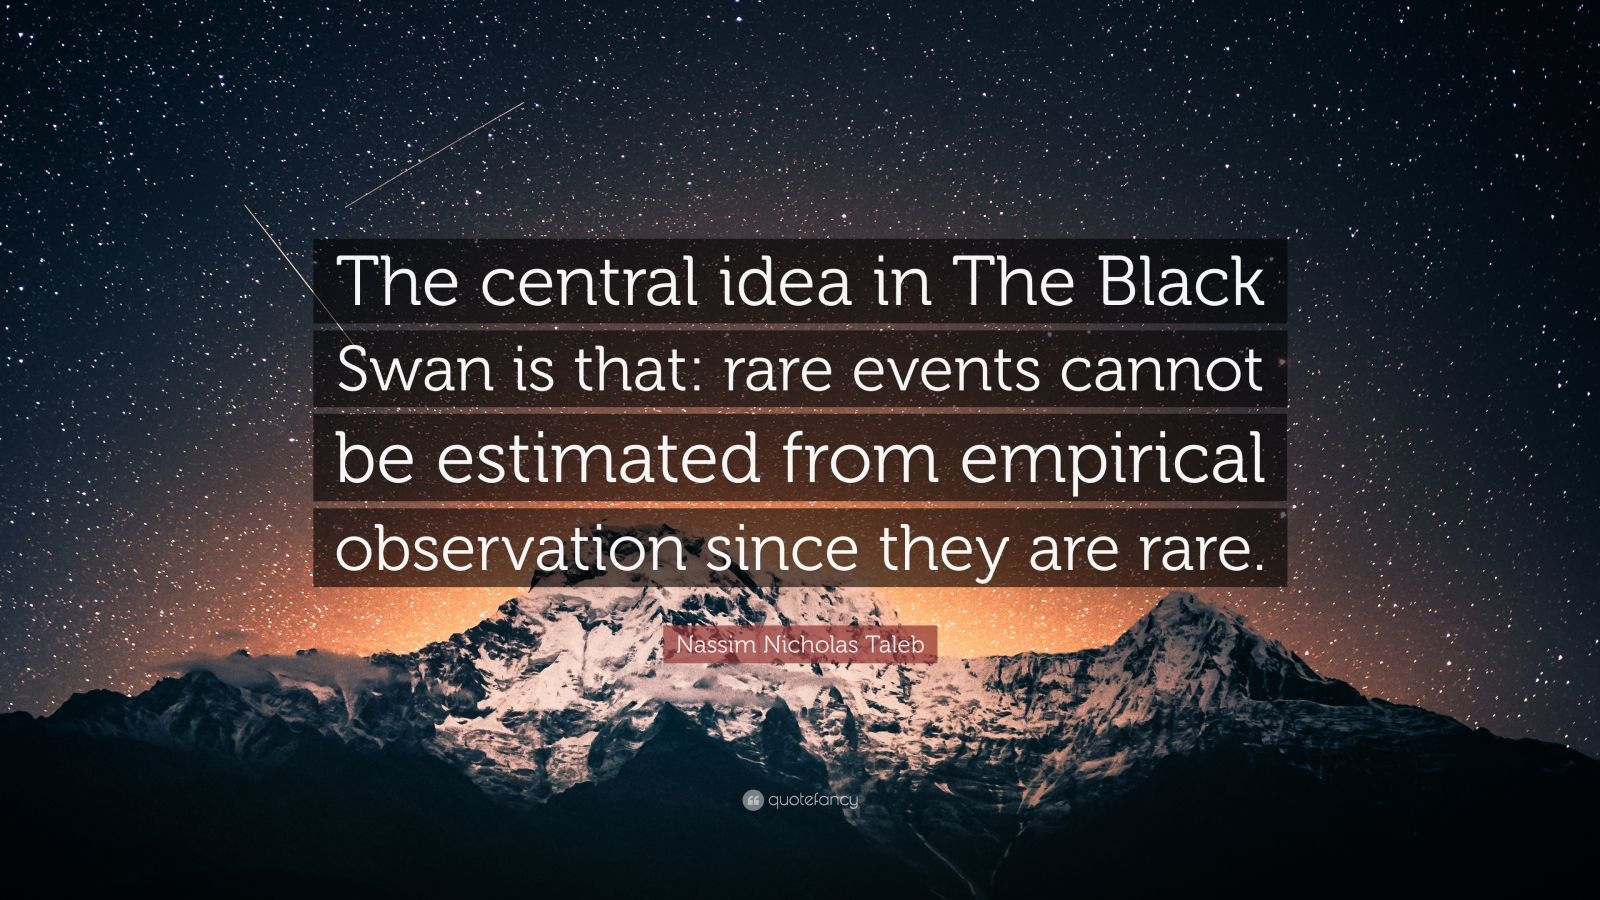 """Nassim Nicholas Taleb Quote: """"The central idea in The Black Swan is that: rare events cannot be estimated from empirical observation since they are rare."""""""